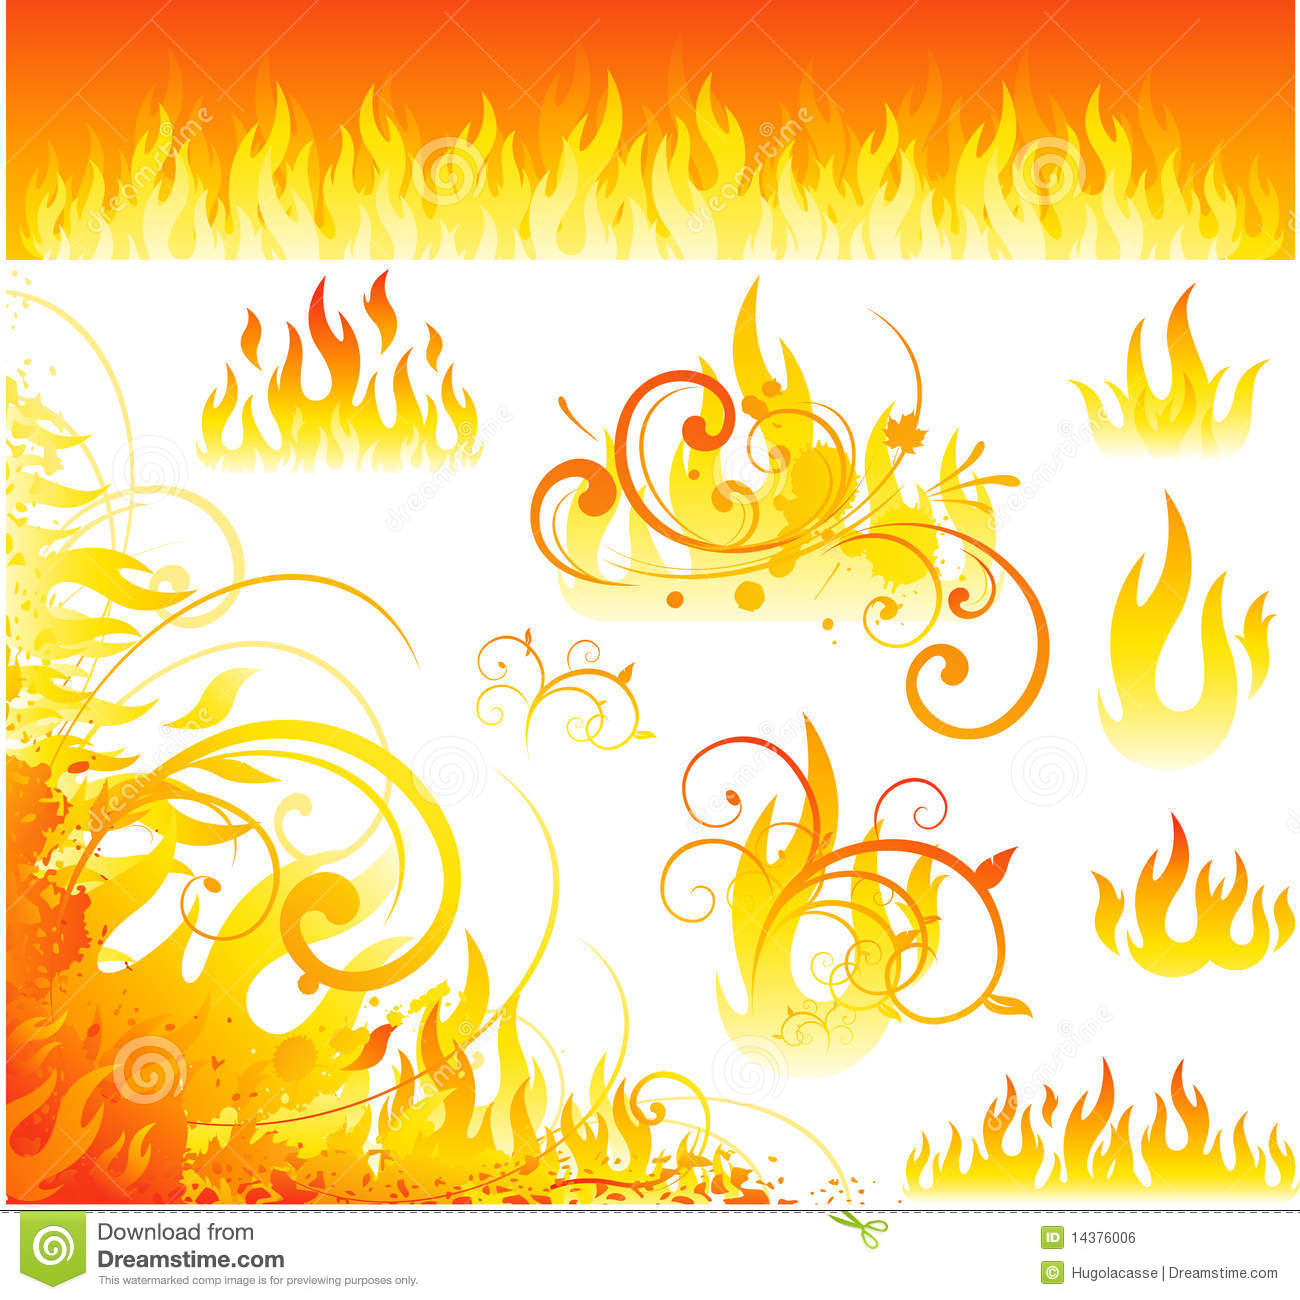 Vector Fire Designs Royalty Free Stock Image - Image: 14376006